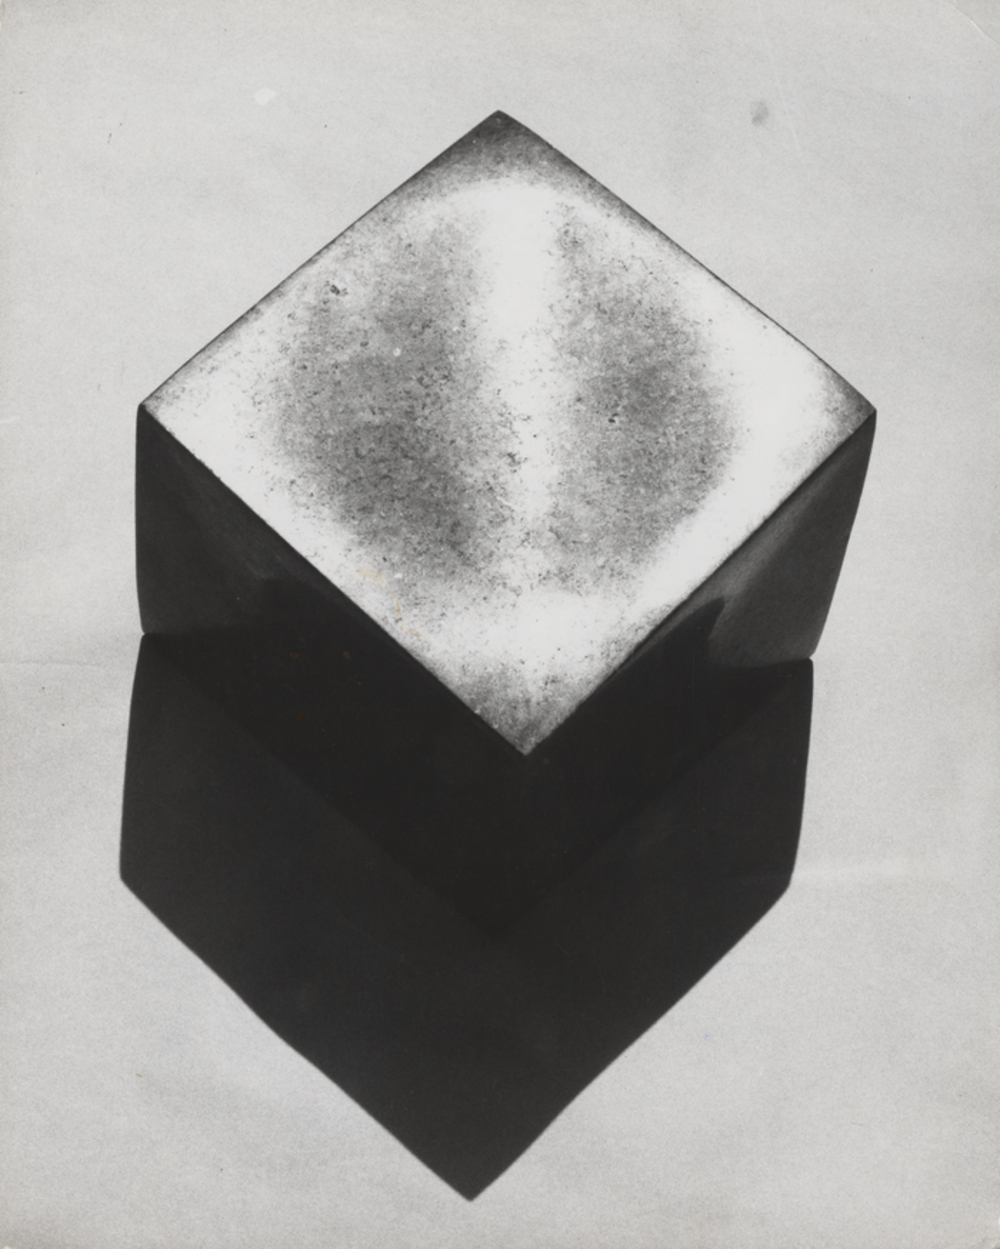 The Life of a Cube, image 2